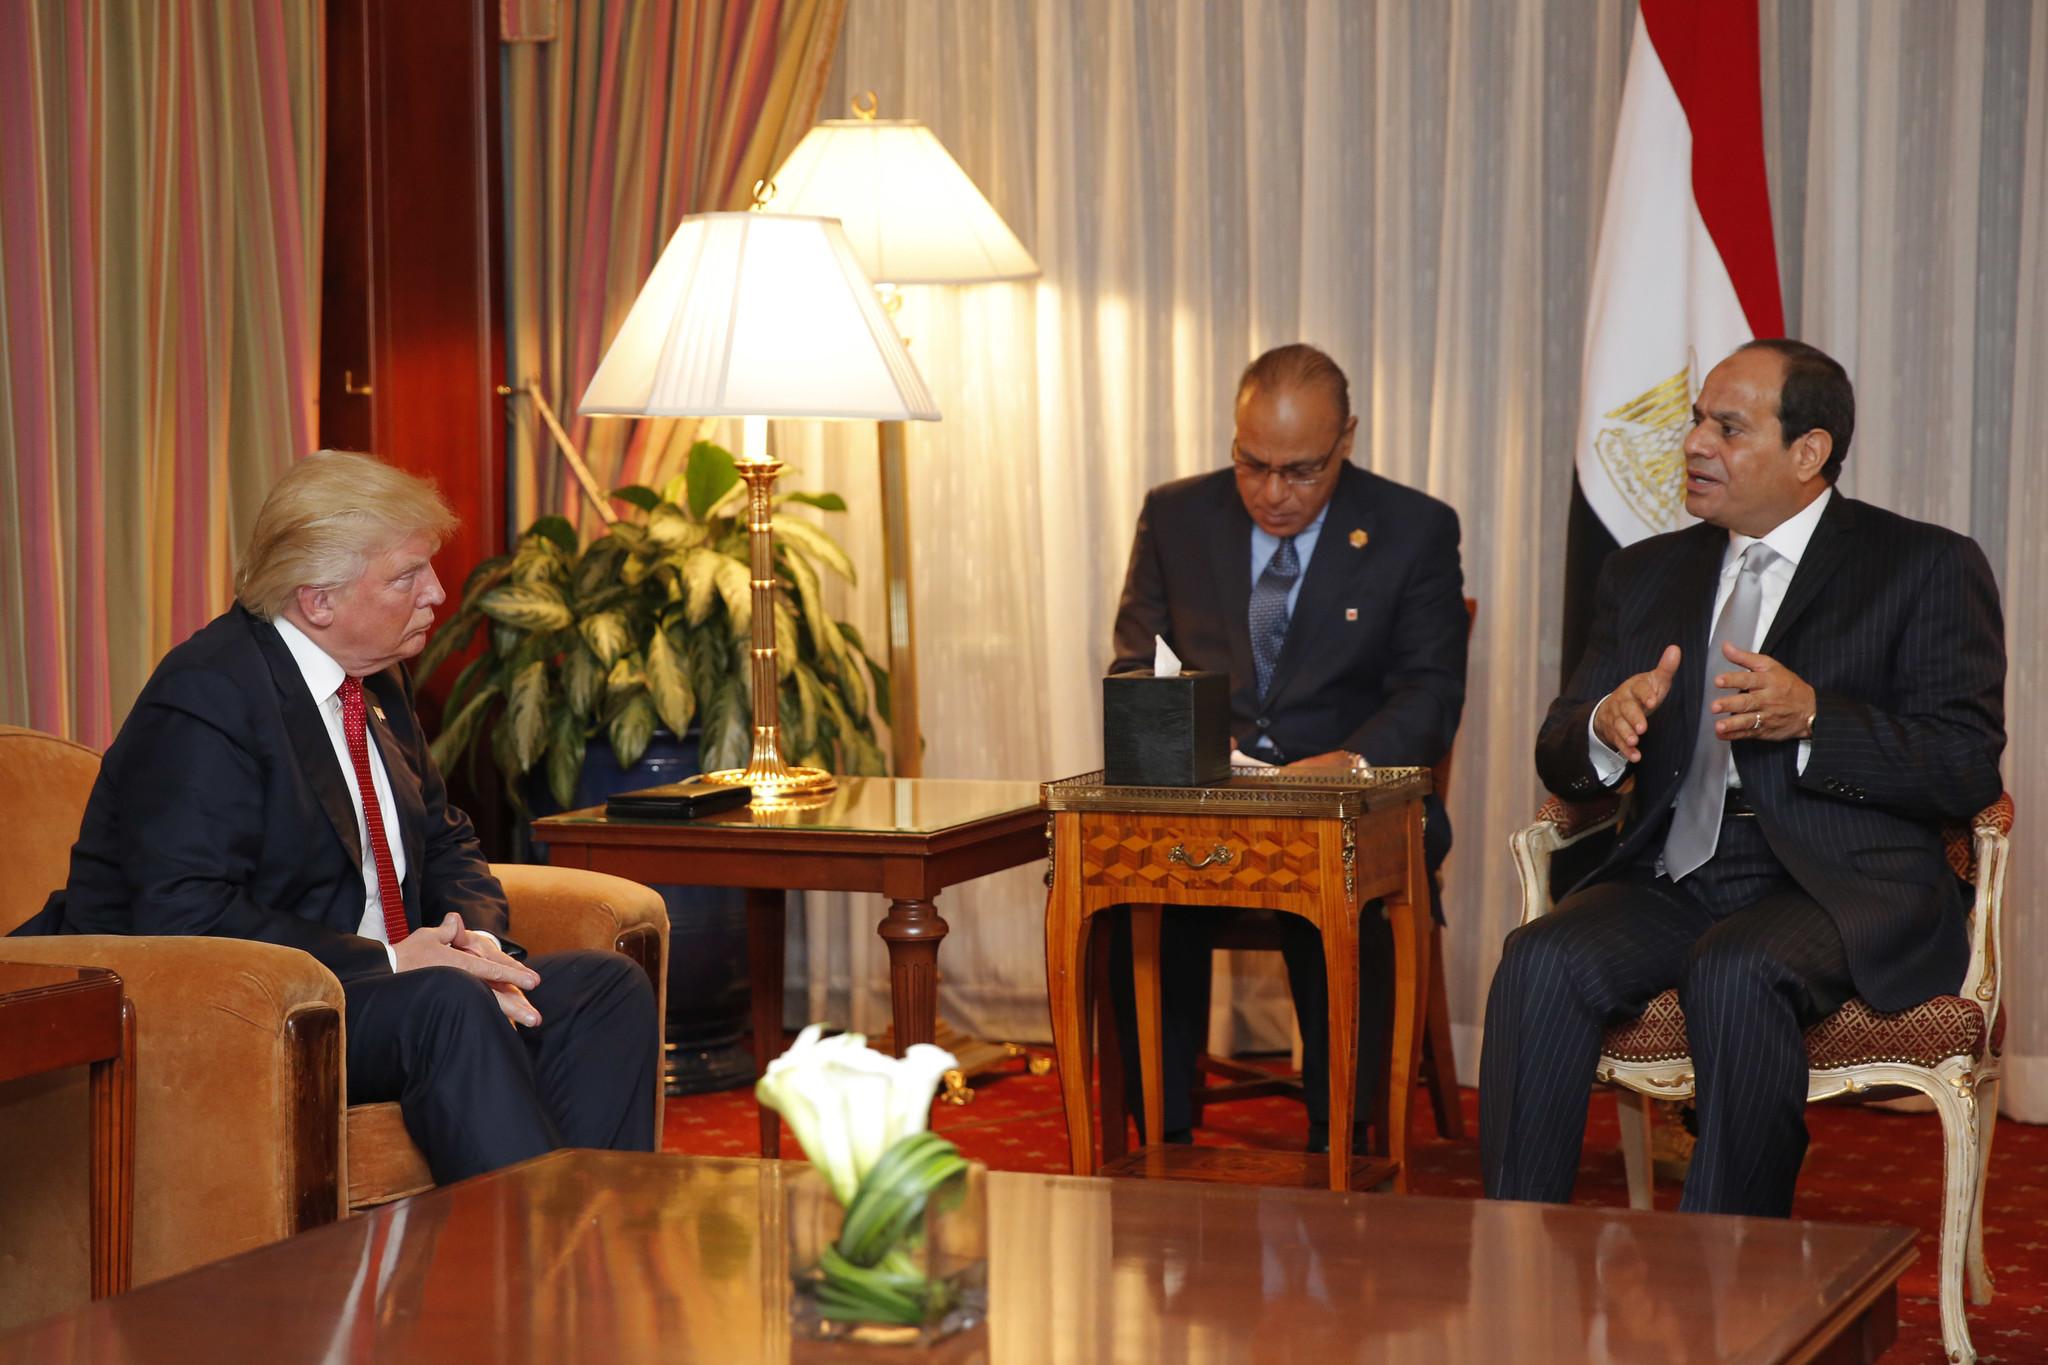 Donald Trump meets with Egyptian President Abdel Fattah Sisi on Monday. (Dominick Reuter / AFP-Getty Images)